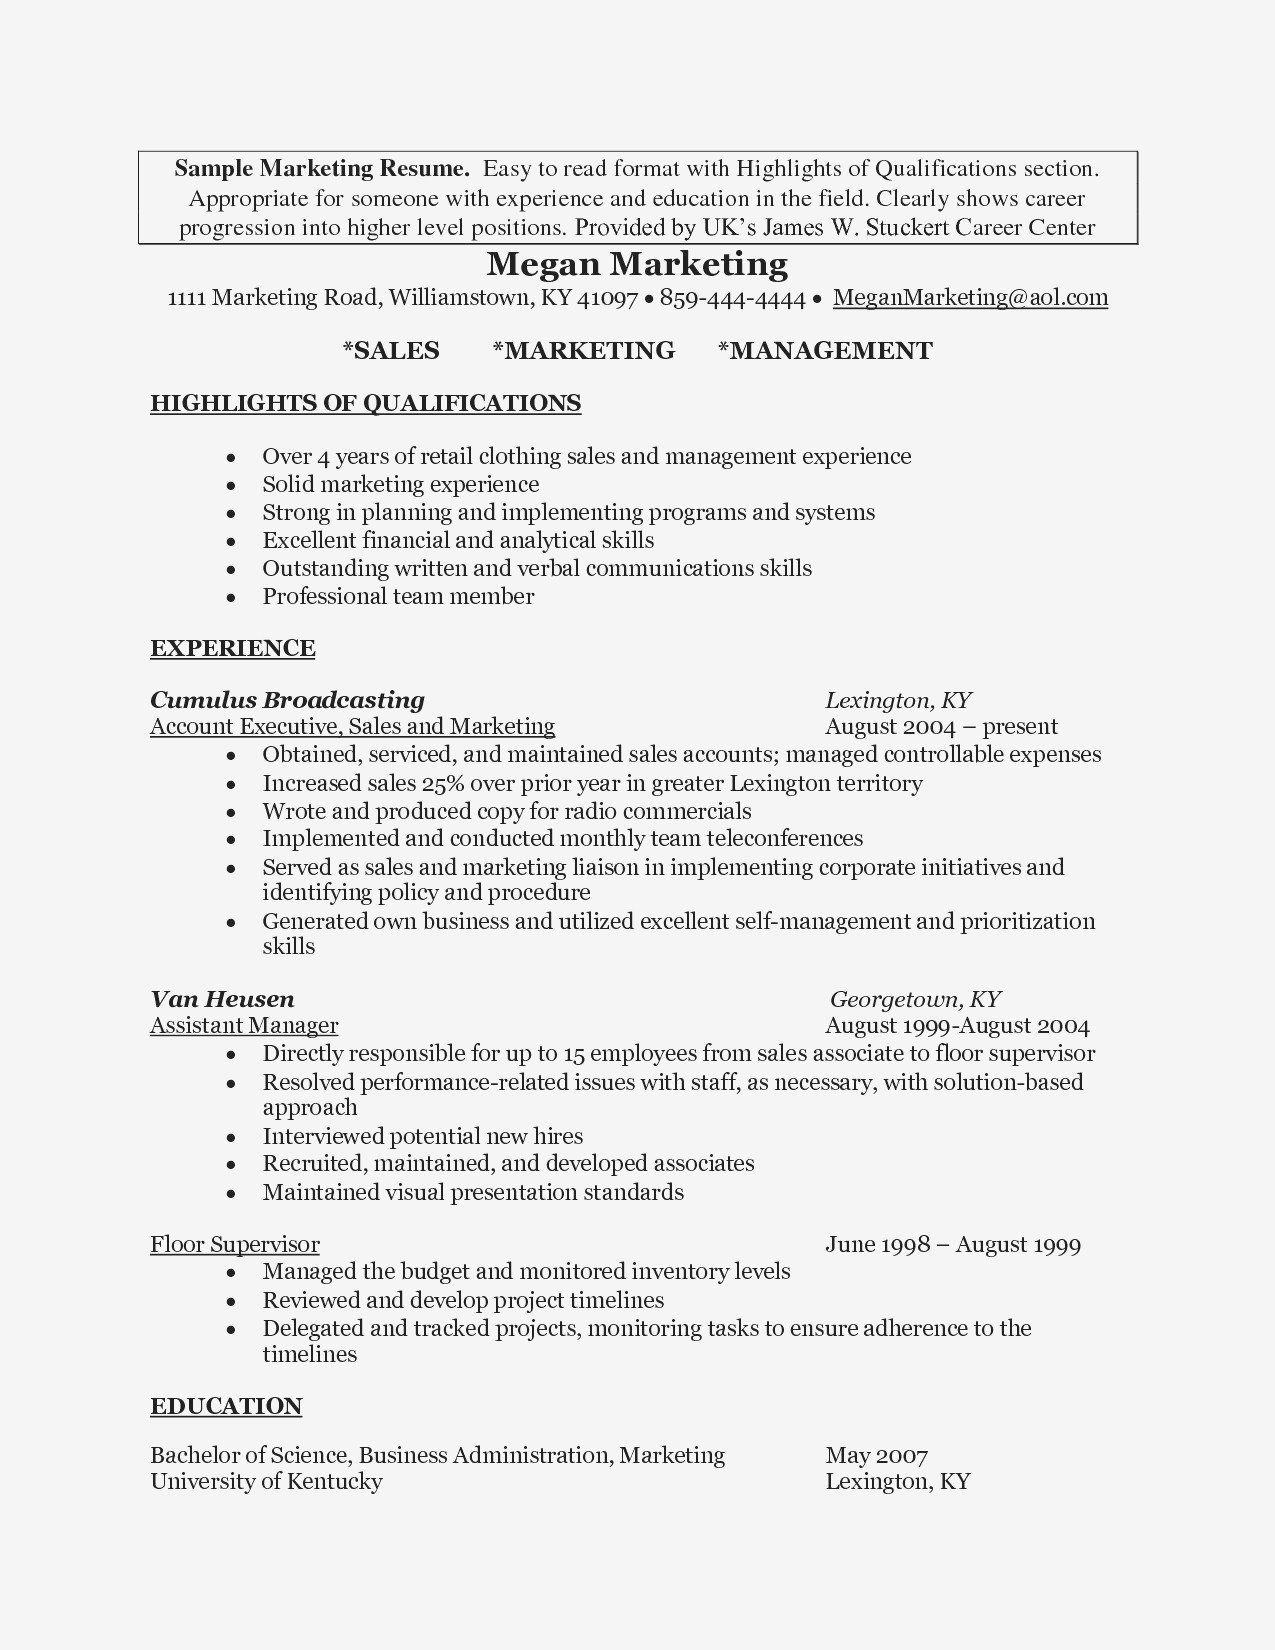 30 Construction Manager Resume Sample in 2020 Marketing